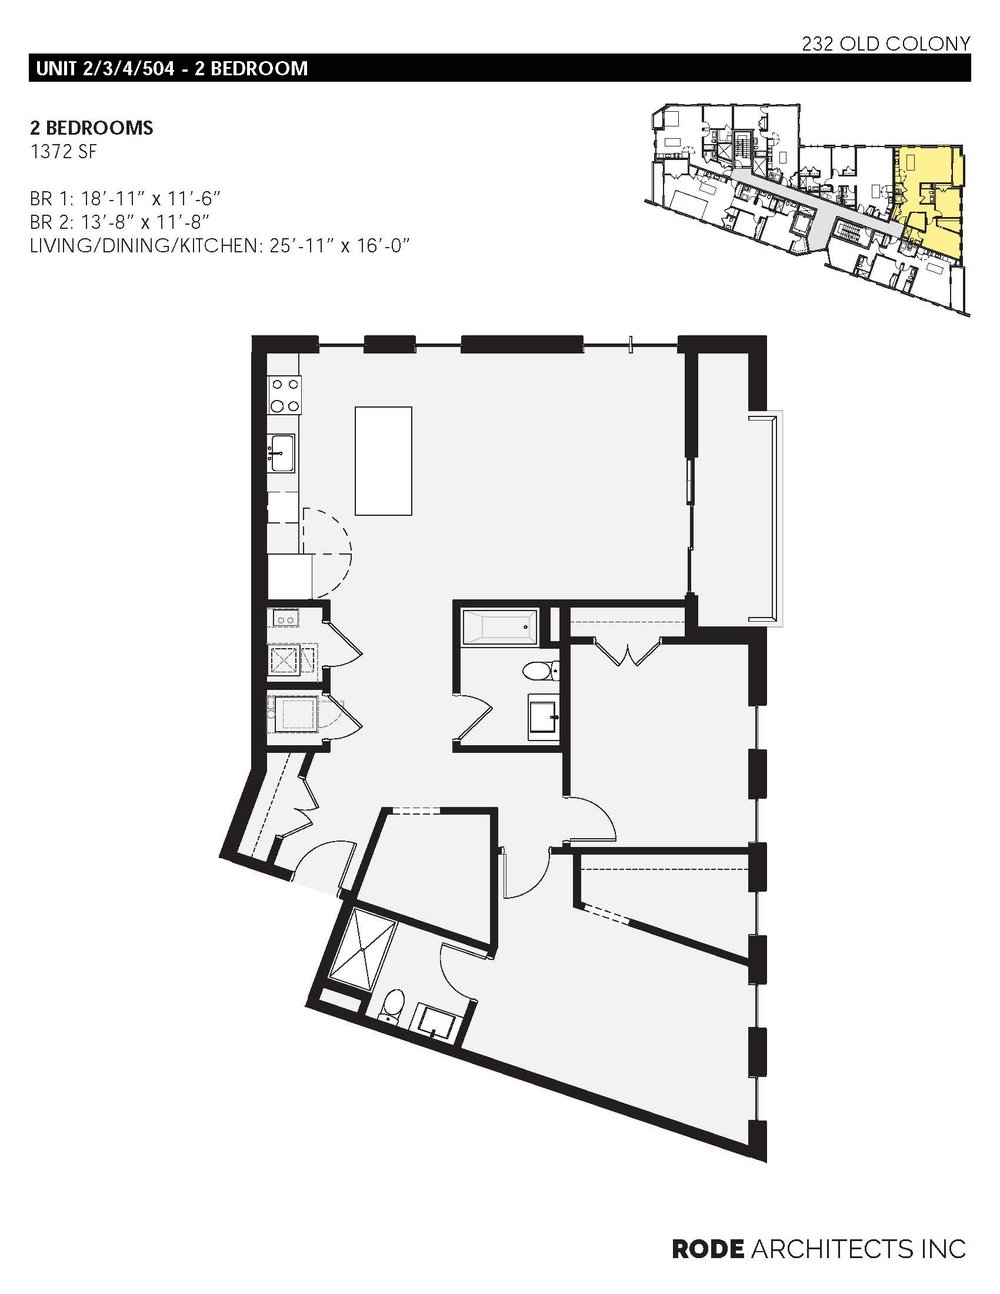 232 Old Colony - Marketing Plans (1)_Page_4.jpg